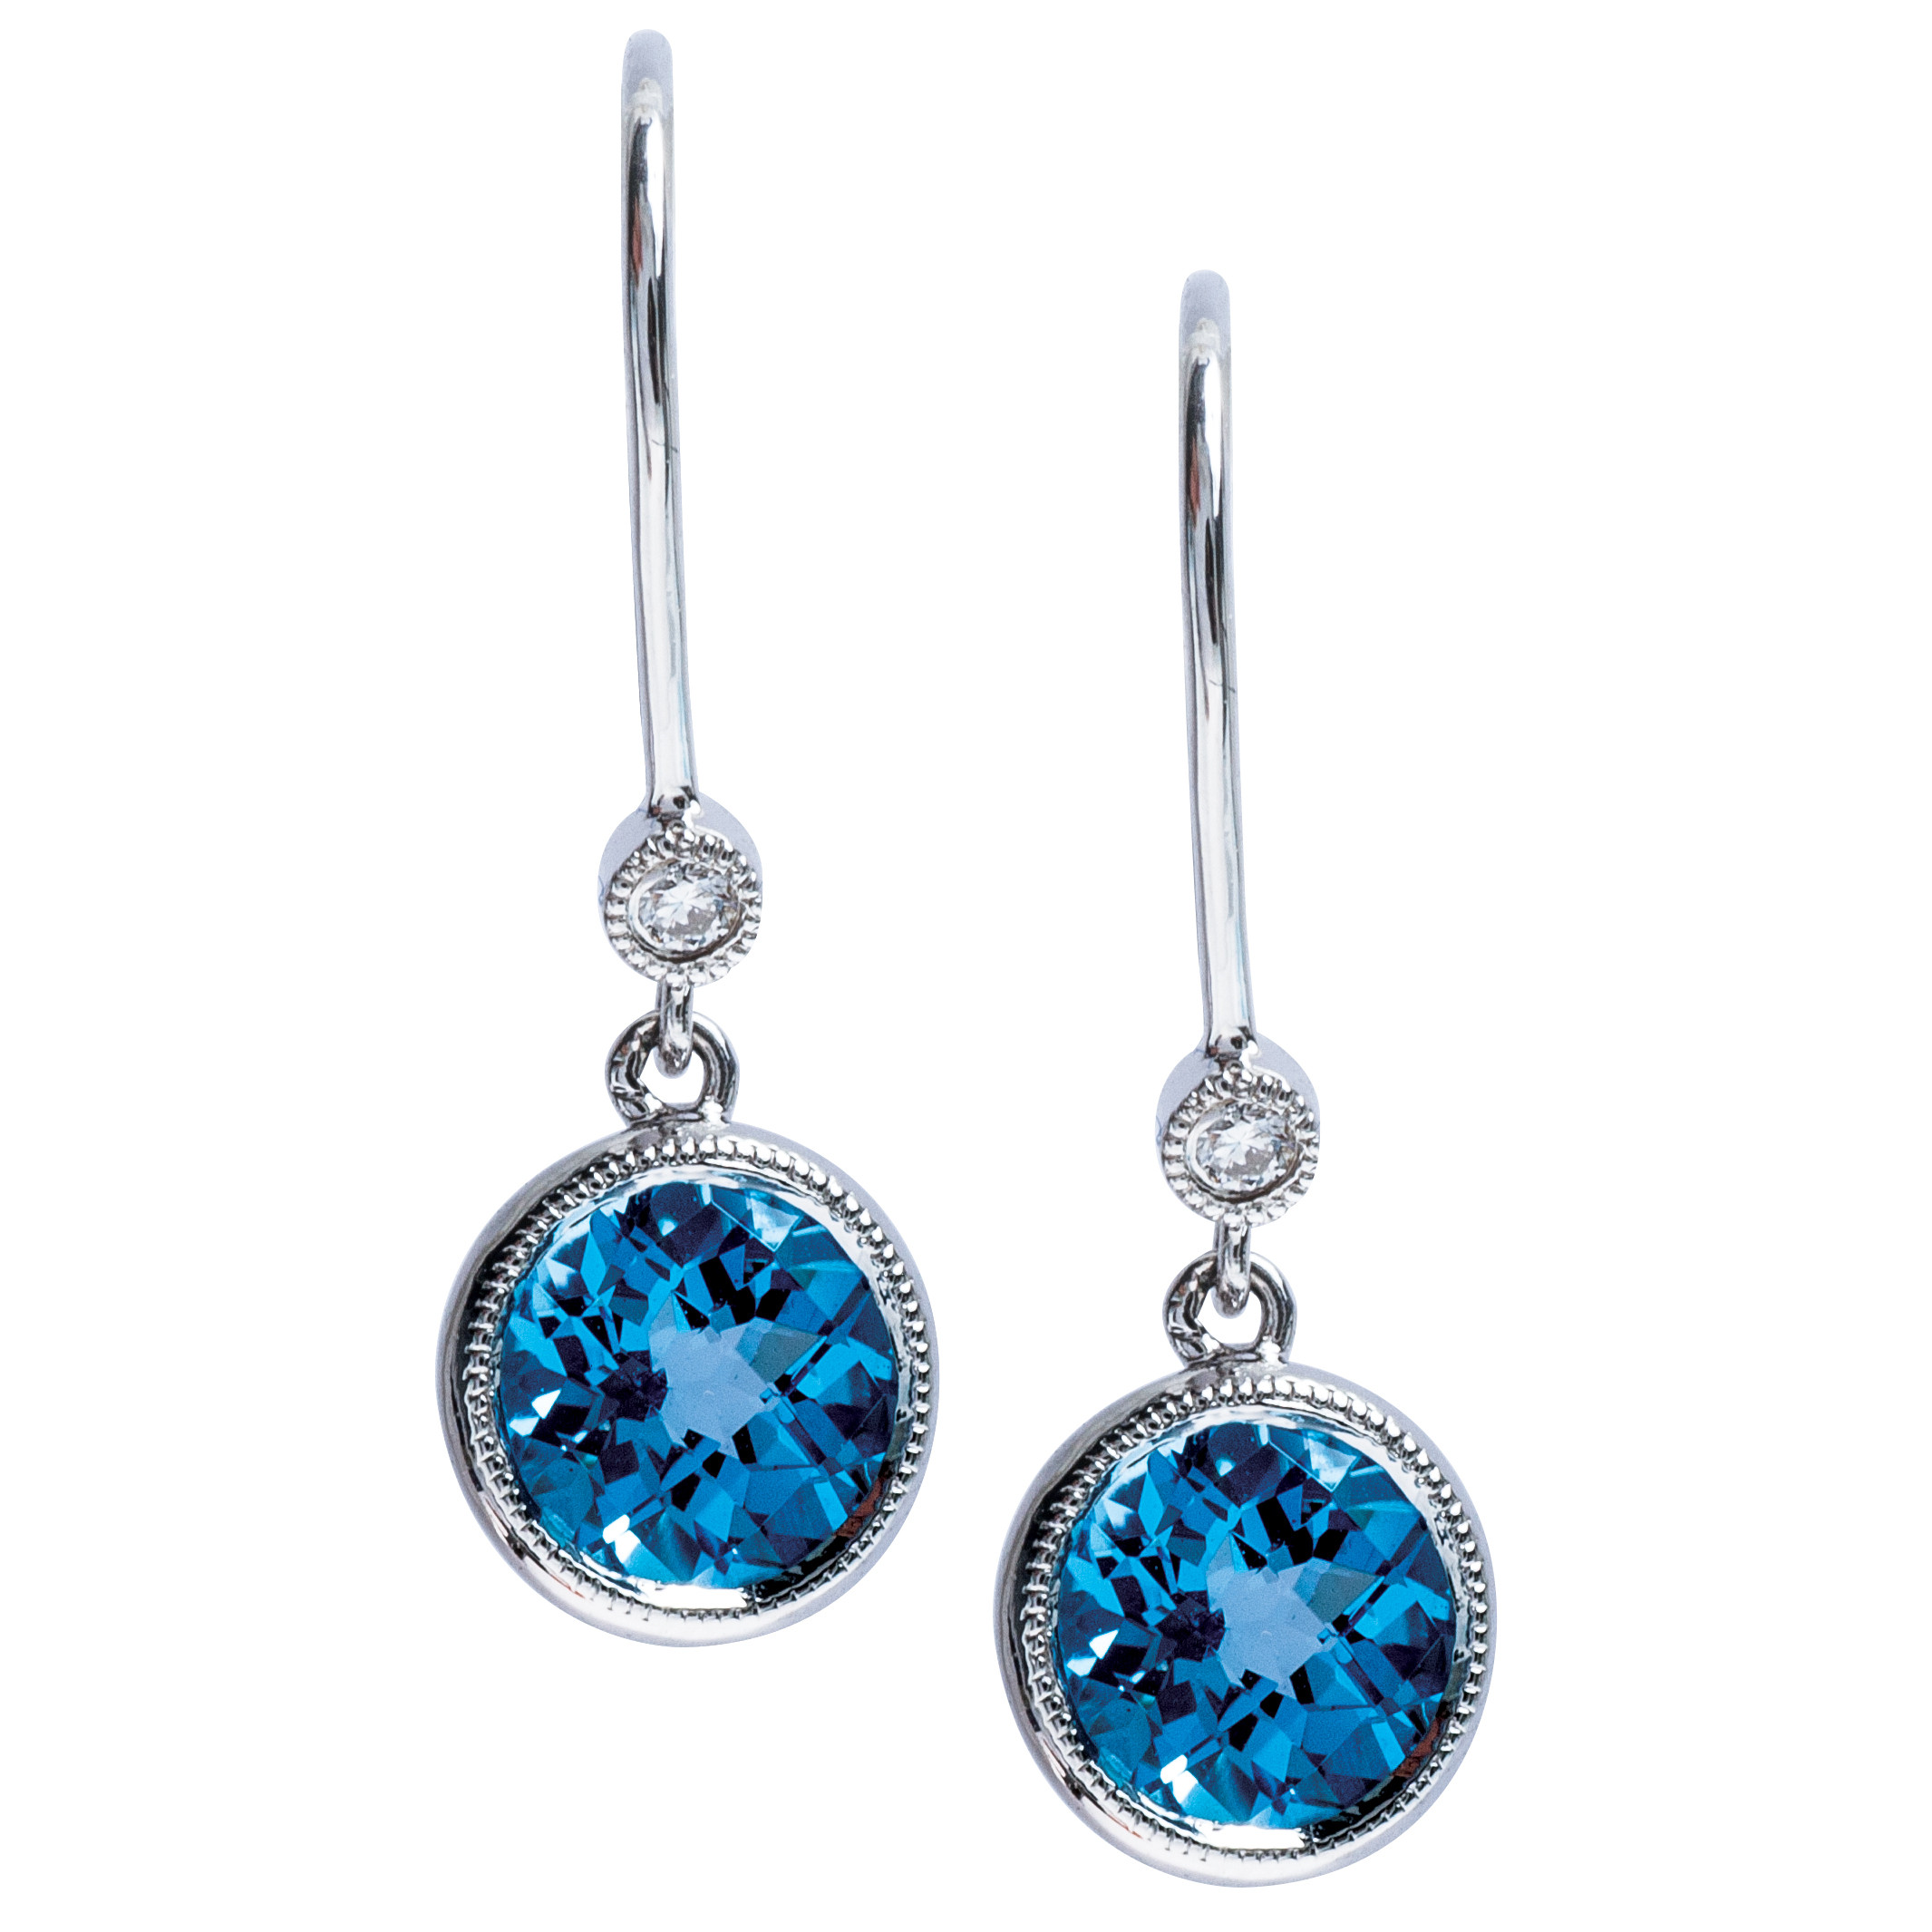 New 1.86 CTW Topaz Earrings